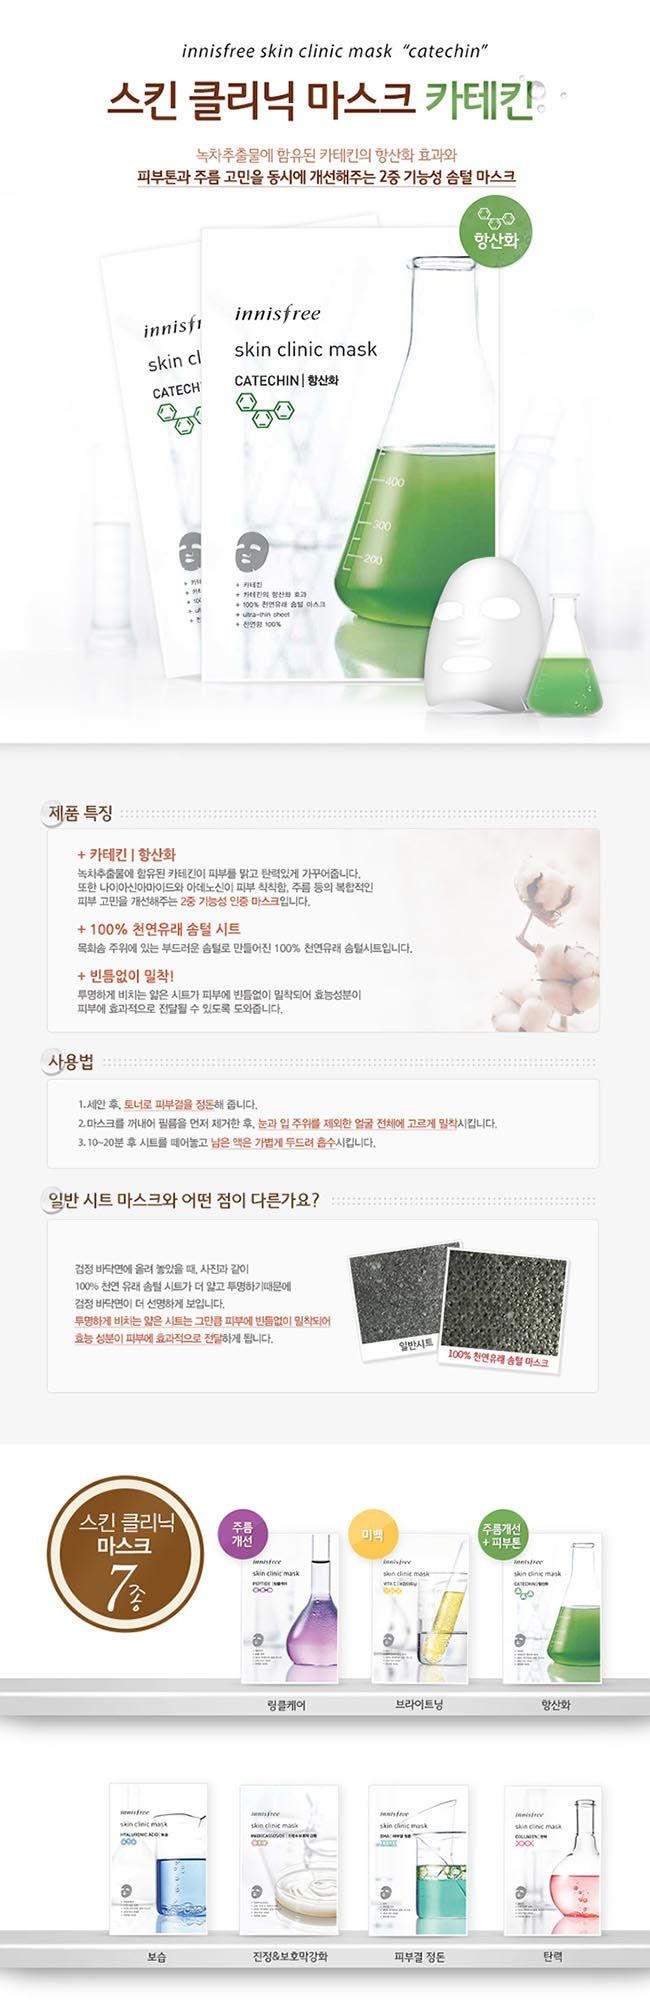 innisfree Skin Clinic Mask Catechin 20mlDescriptionWhen to use innisfree sheet masks Day before special events like dating, interviewTo be relaxed with your friends or family After vacation, outdoor activitiesAt least more than 2 times per week > D